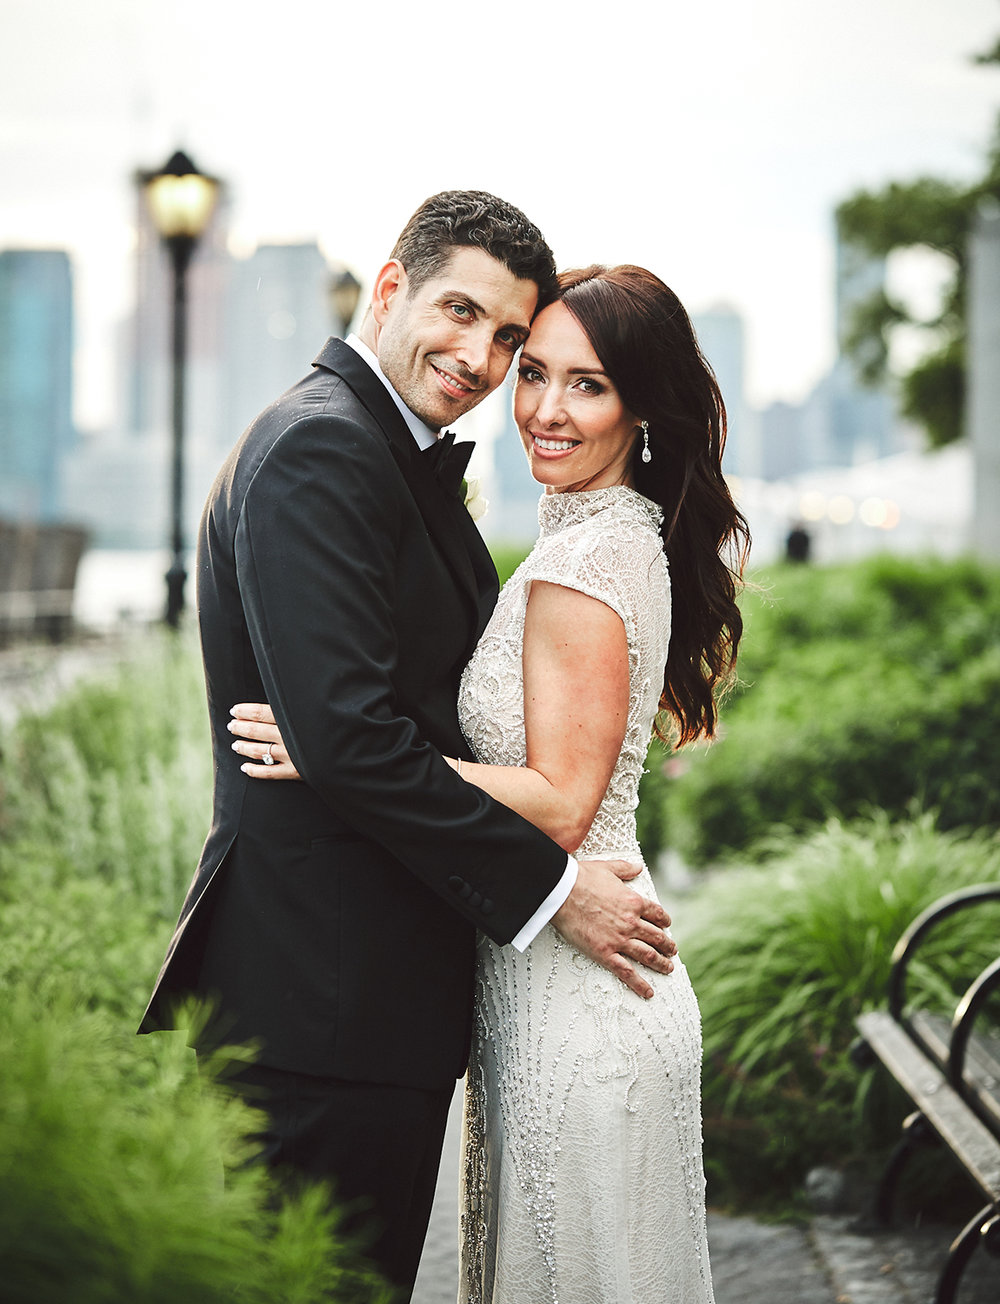 180622_BatteryGardensWeddingPhotography_NYCWeddingPhotographer_BriJohnsonWeddings_0100.jpg